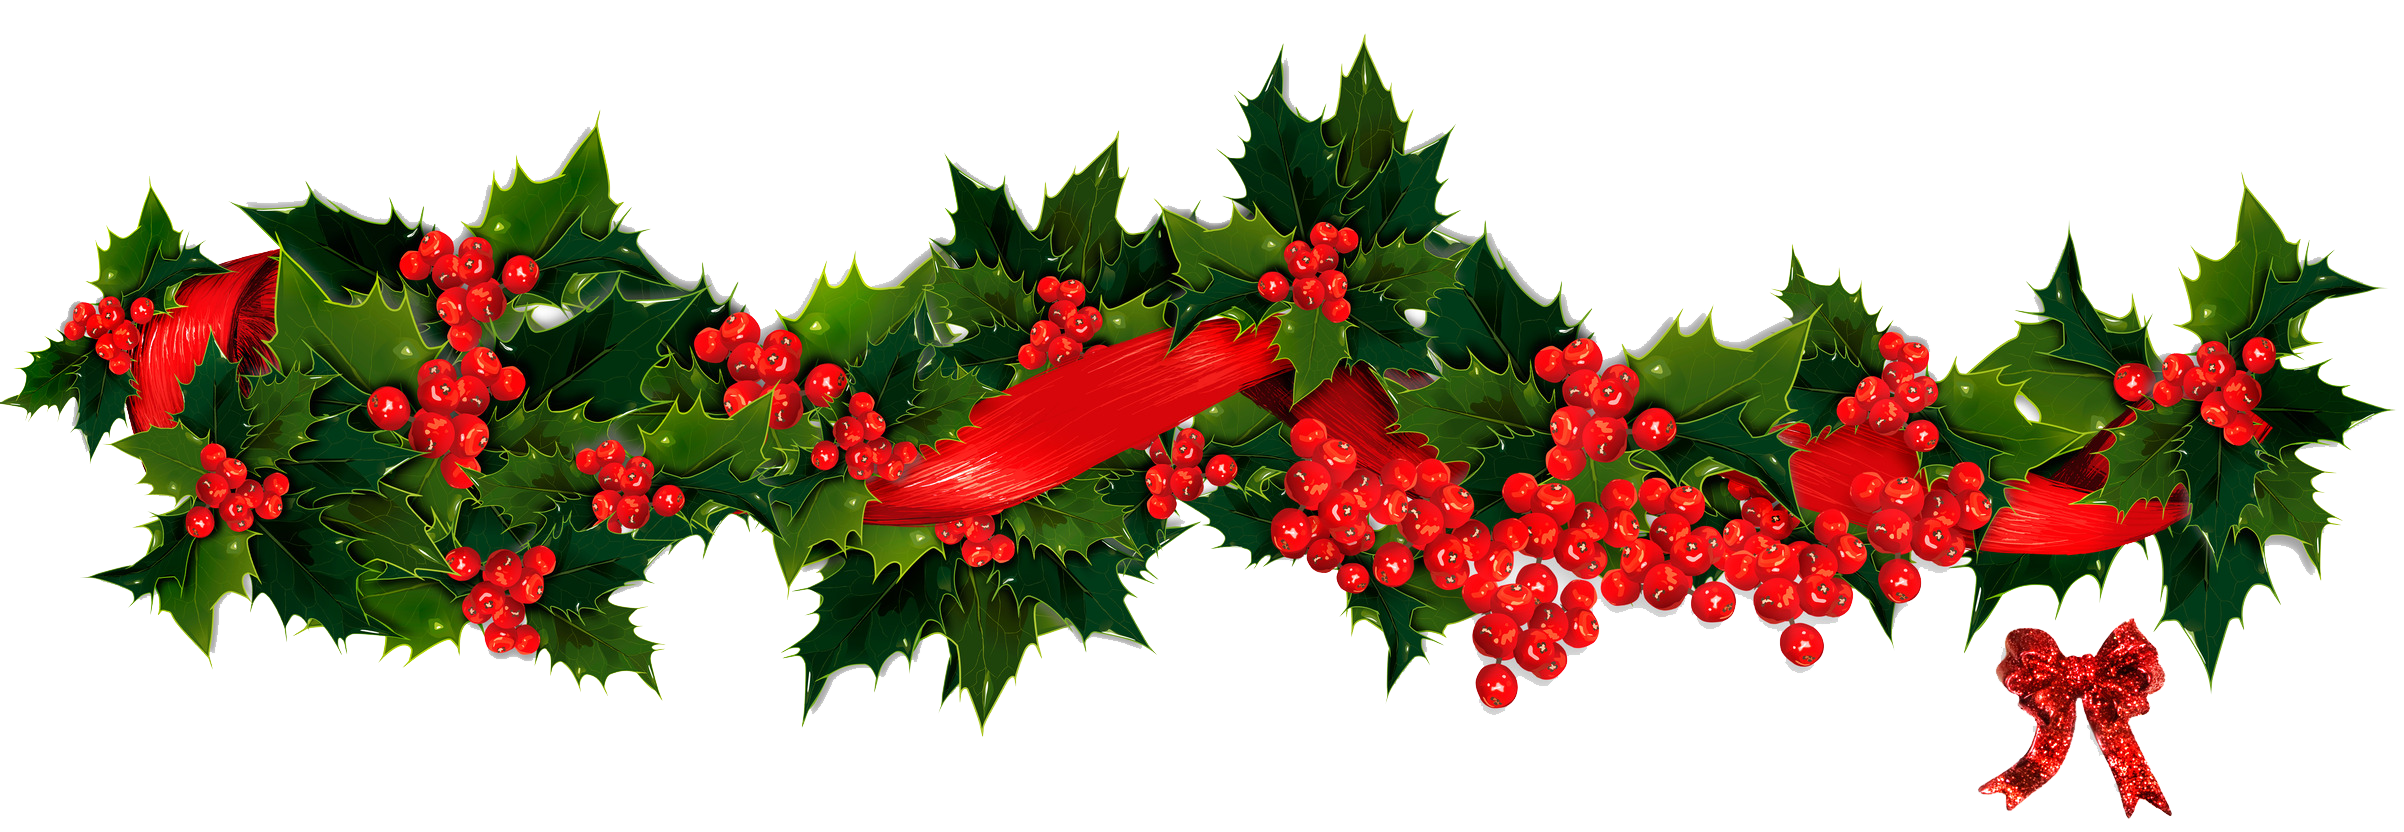 Holly tree clipart picture freeuse library Garland PNG Transparent Images | PNG All picture freeuse library